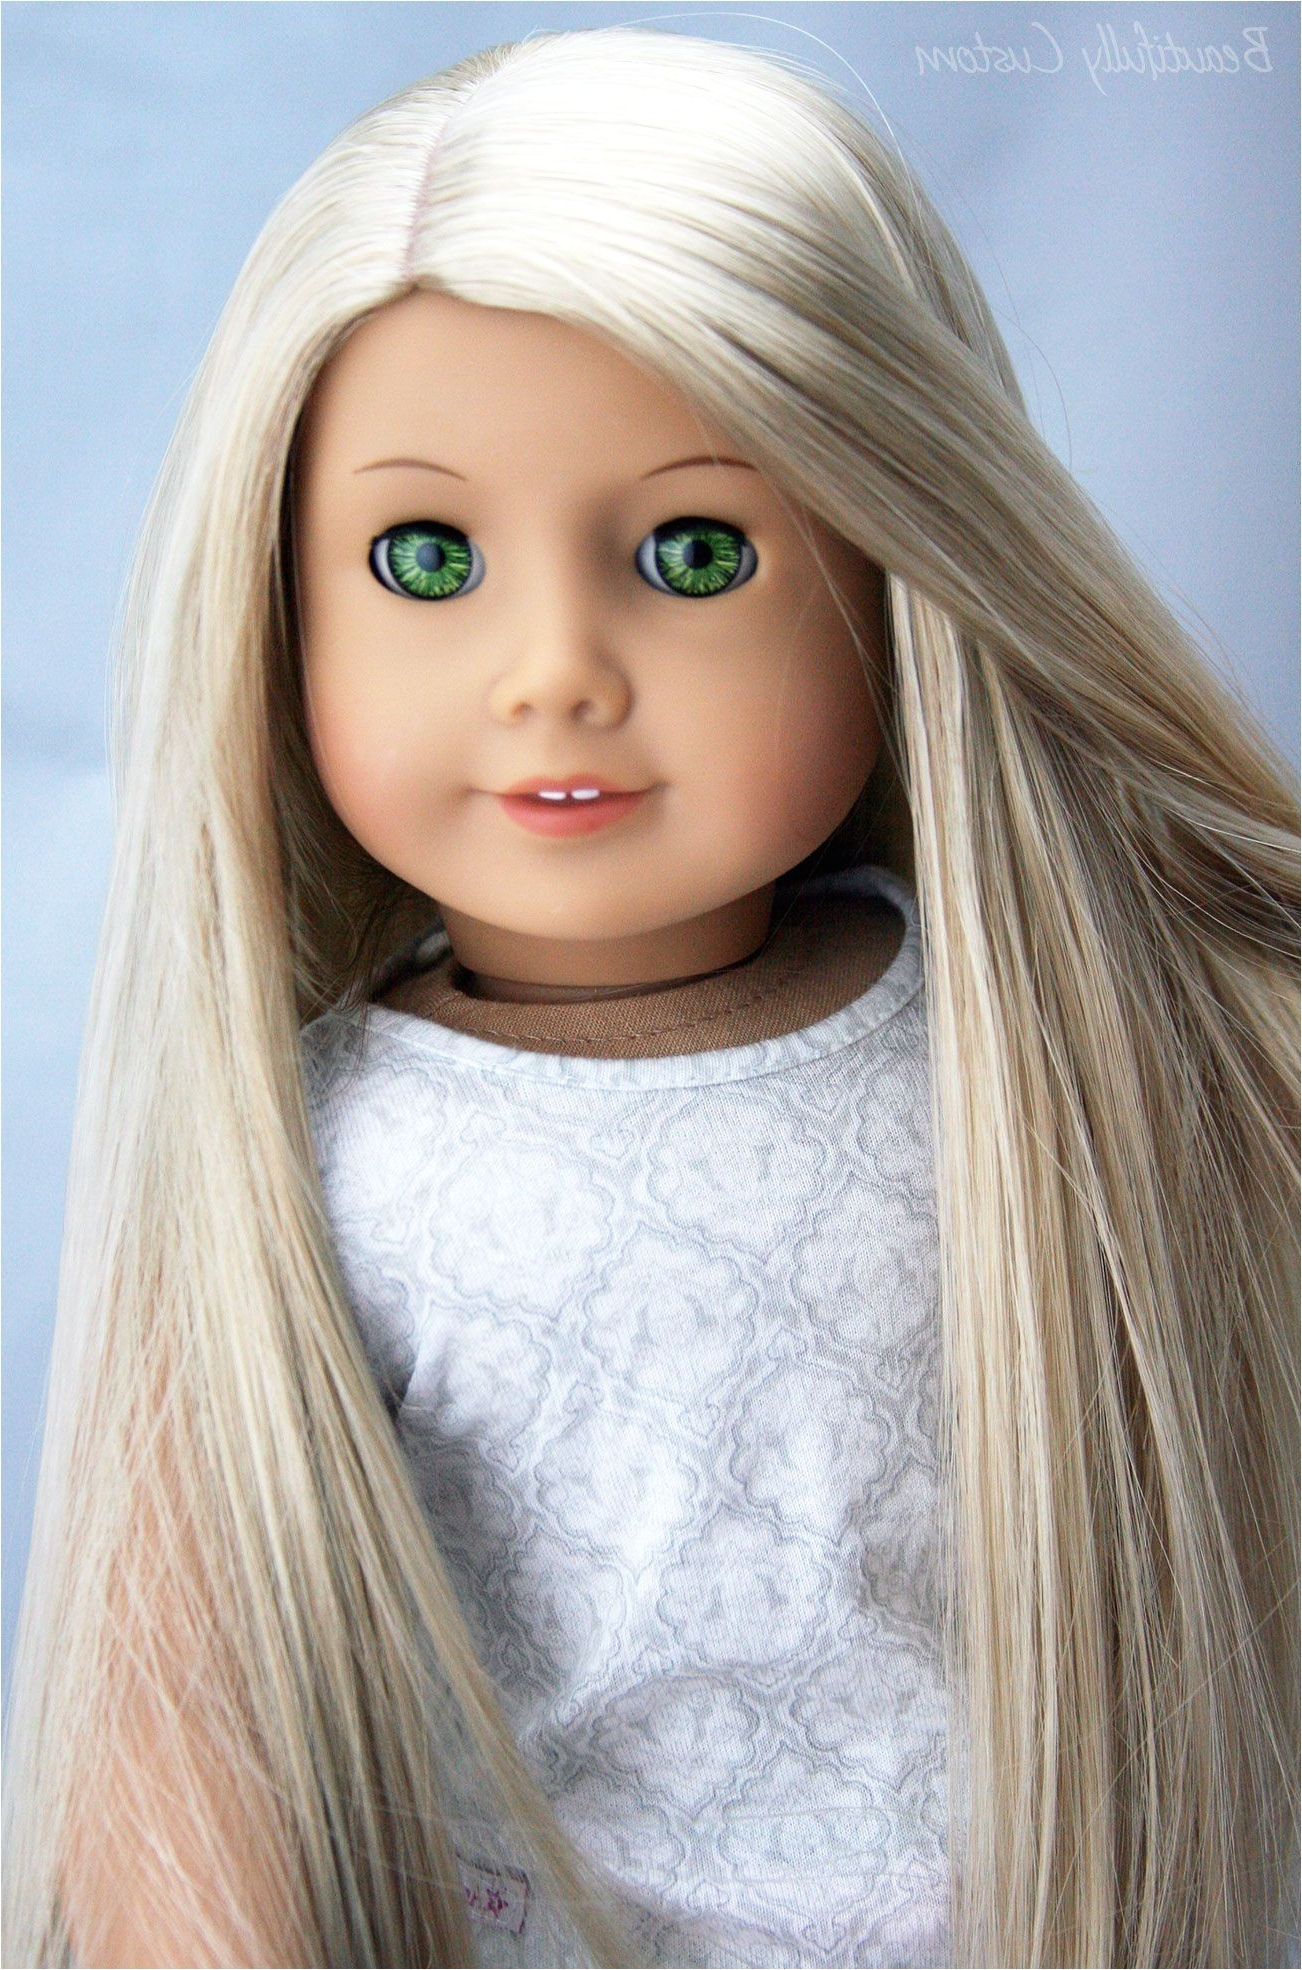 Fresh Cool Hairdos For American Girl Dolls   Newhairstylegallery For Hairstyles For American Girl Dolls With Short Hair (View 14 of 25)